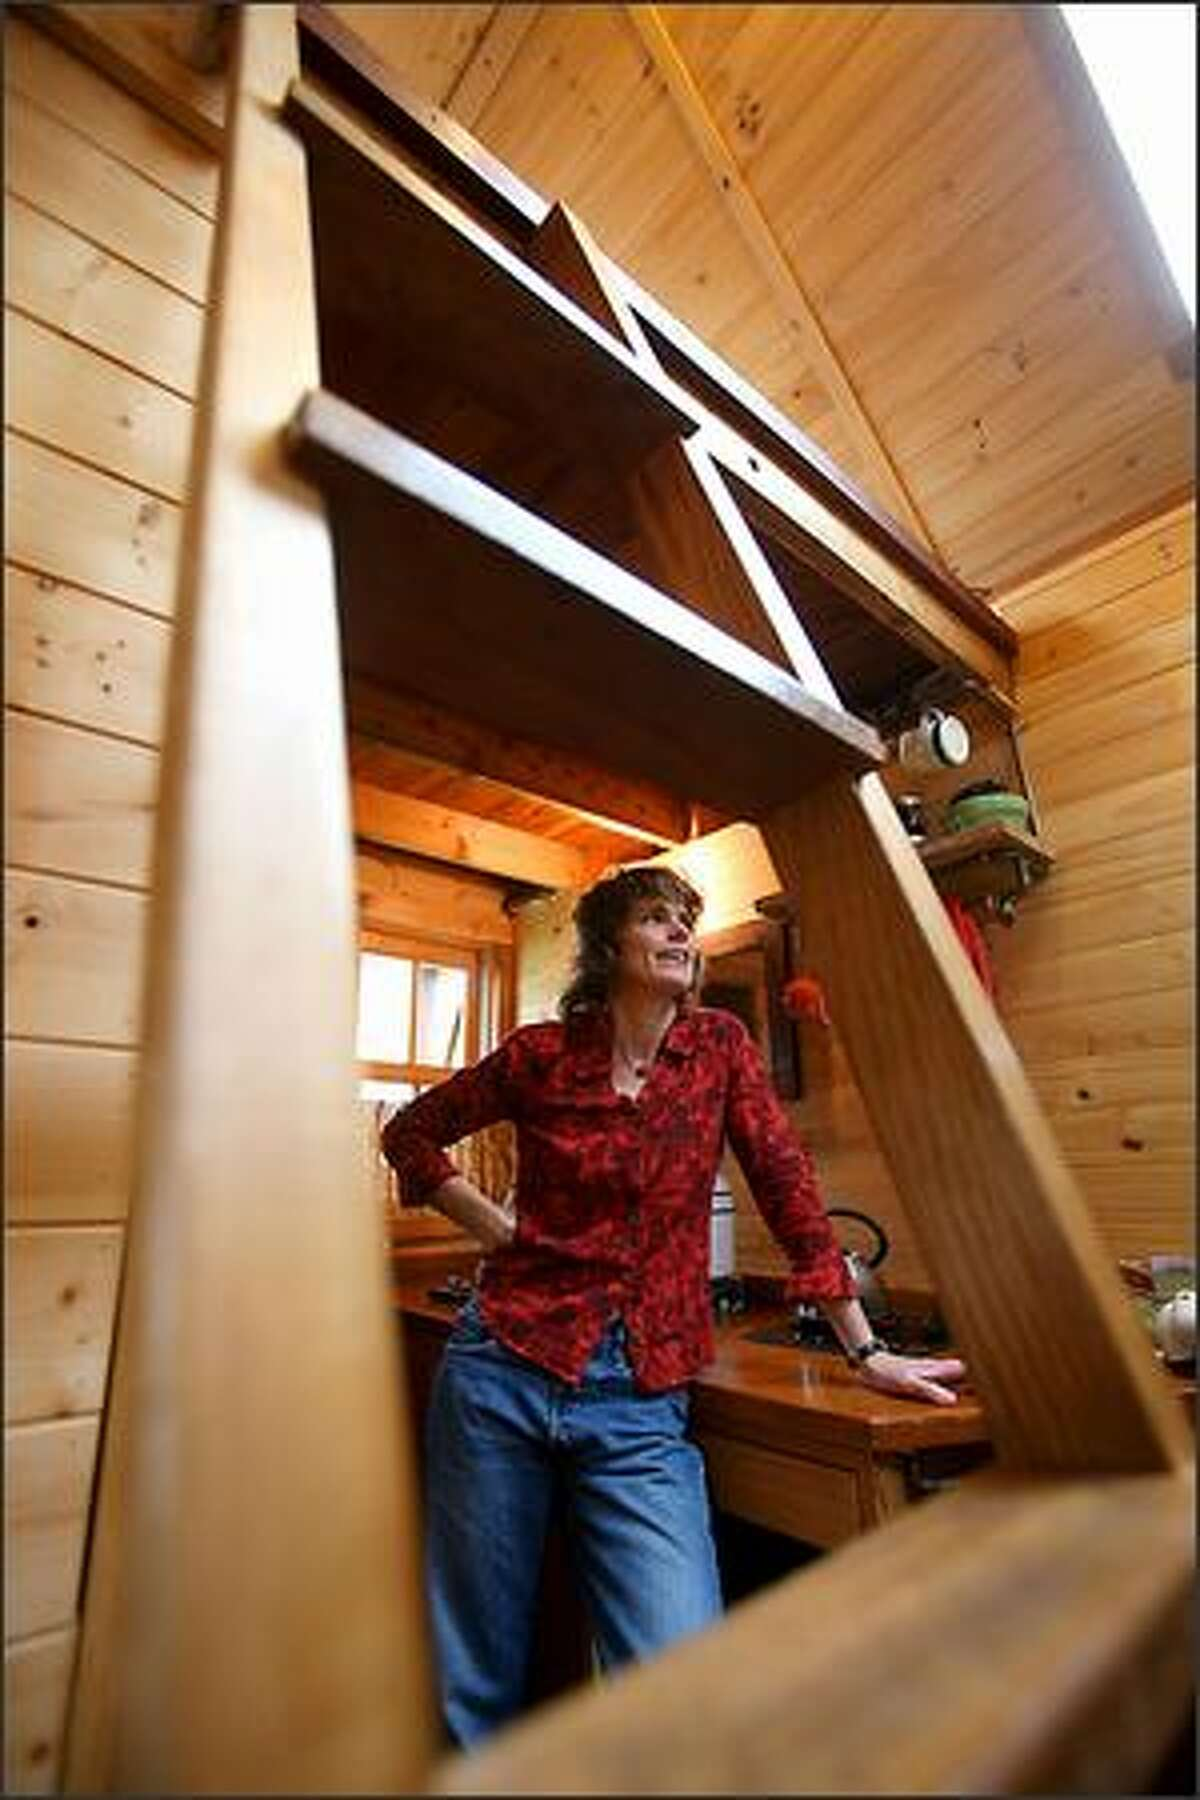 Dee Williams, photographed through the steps leading up to her sleeping loft, lives in an 84-square-foot wooden Tumbleweed house on wheels in a neighbor's backyard.